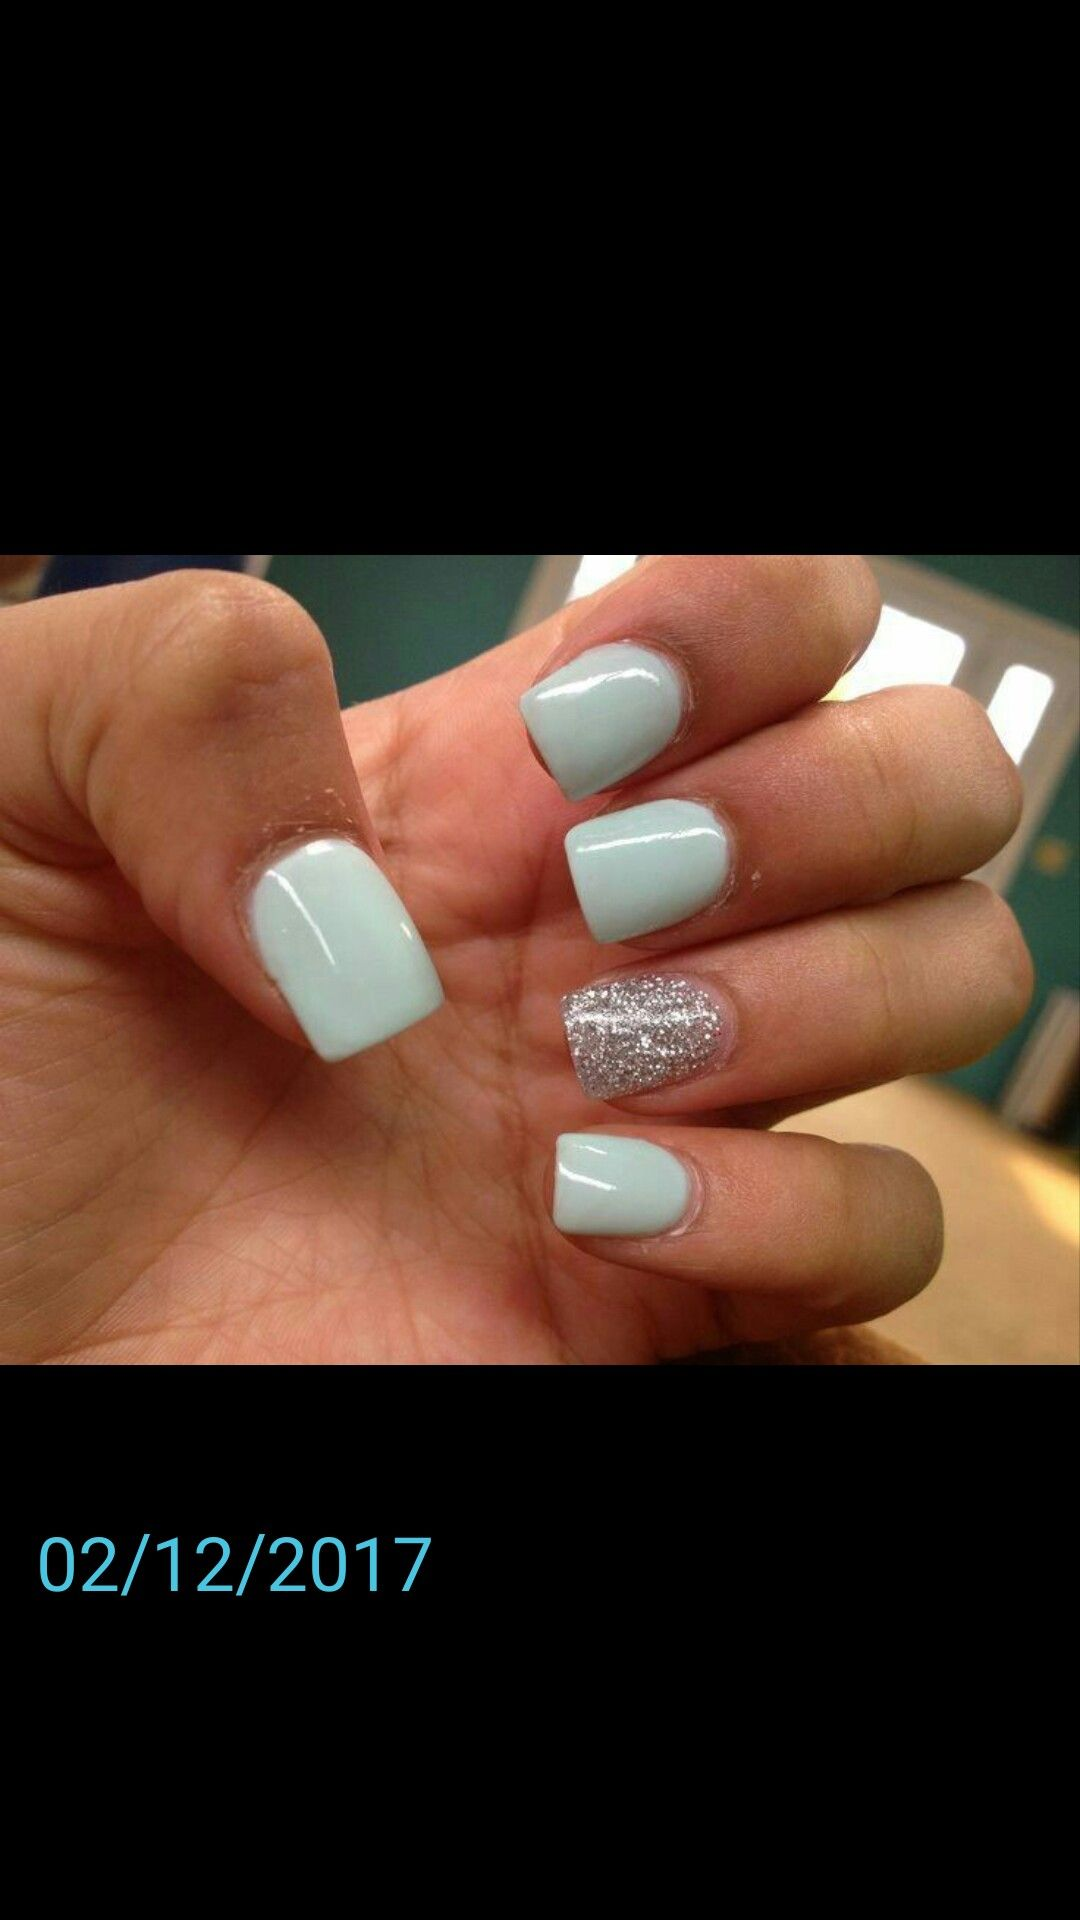 Pin By Natalie Rainey On Nails Cute Acrylic Nails Rounded Acrylic Nails Silver Acrylic Nails